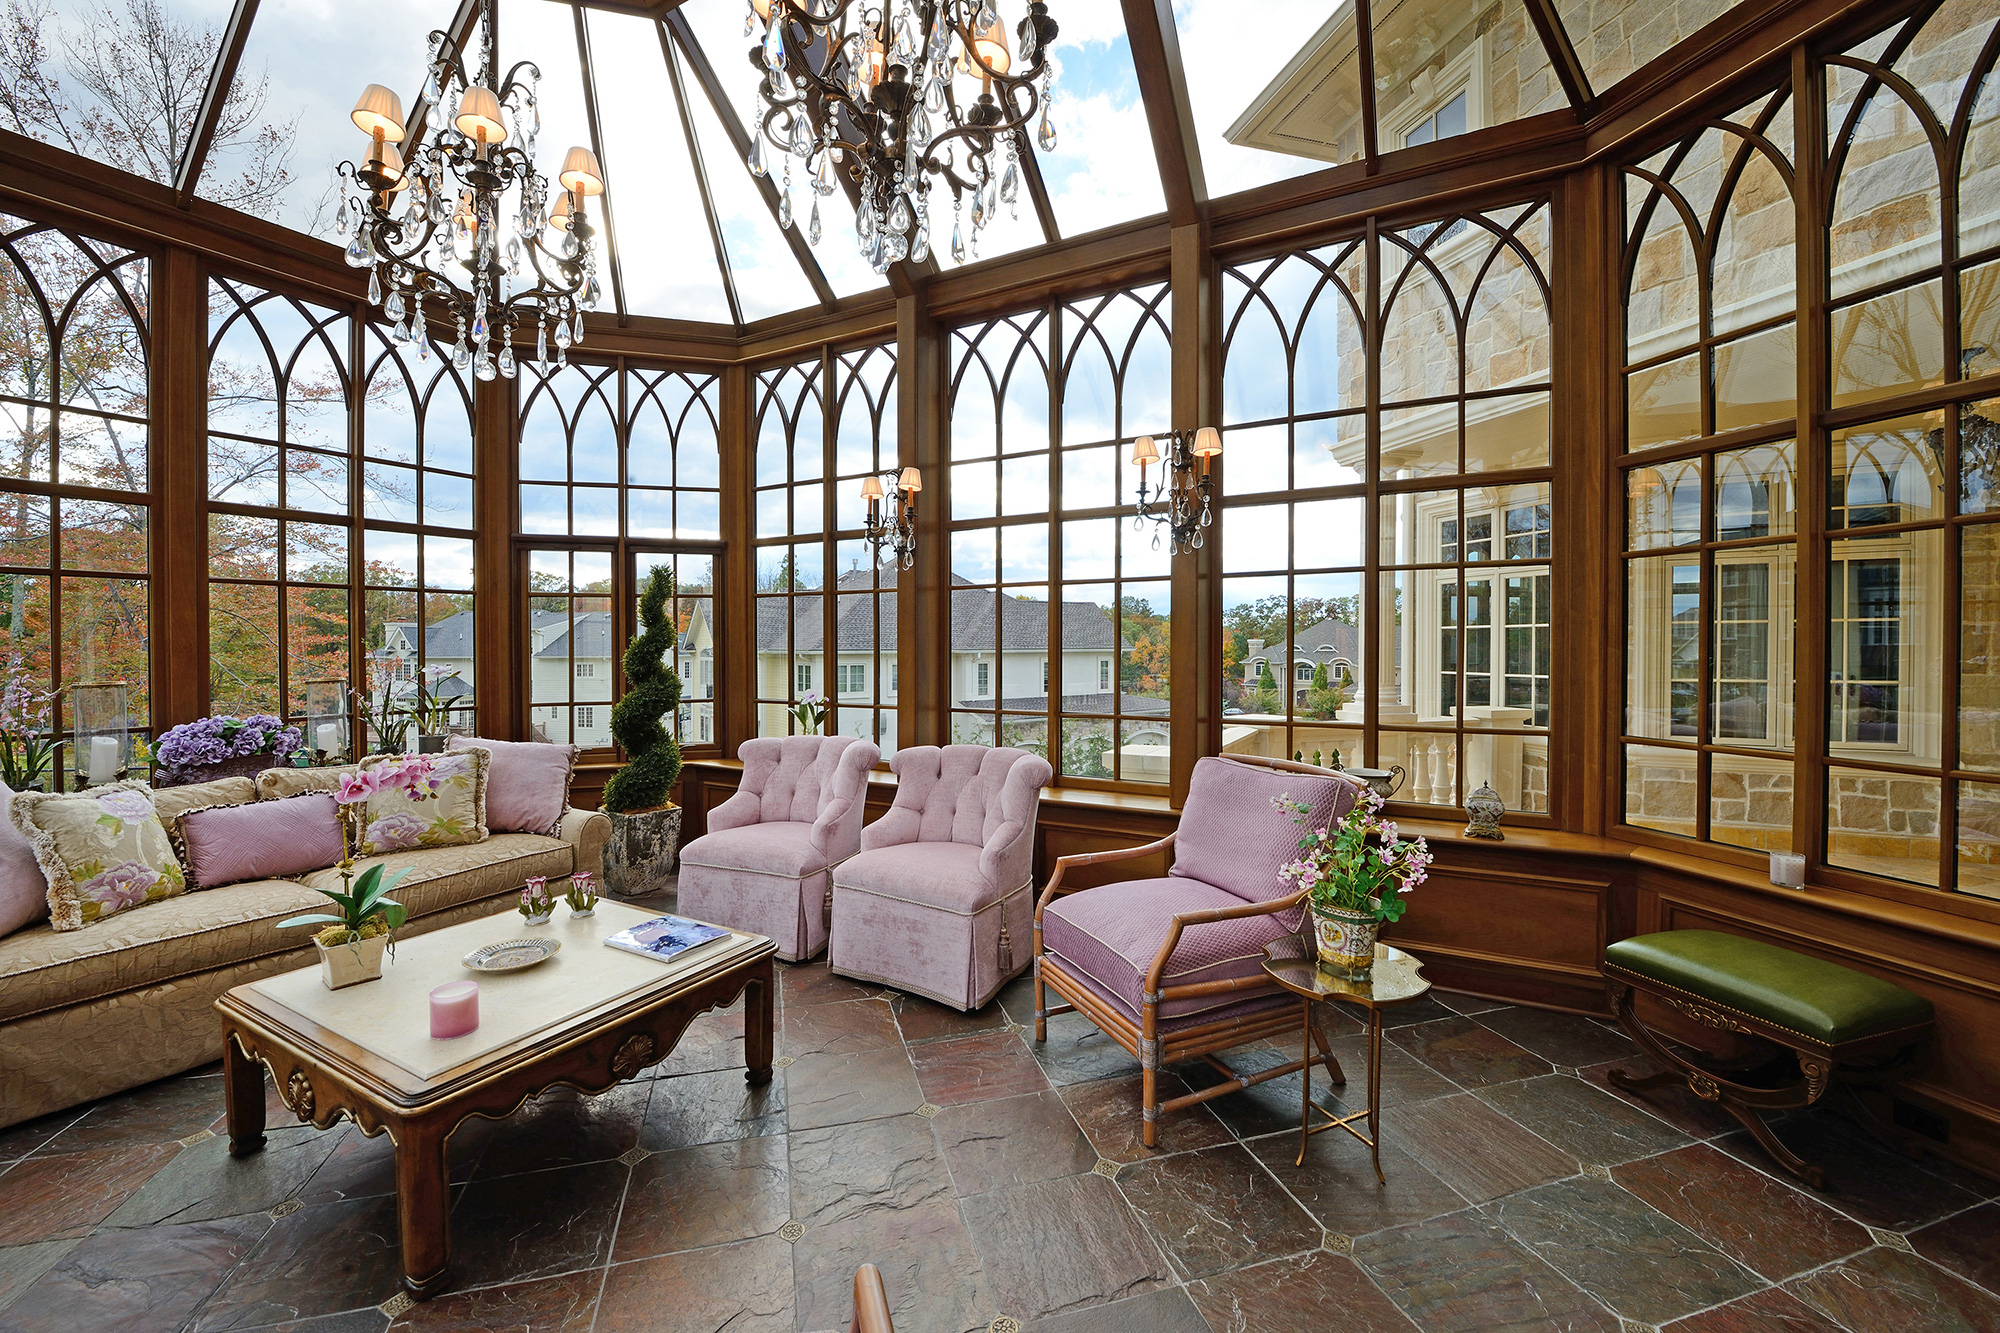 The Best Choices For Conservatory Flooring together with Luxury likewise 2 as well 75856a347c428e3d in addition Teenage Girl Bedroom Ideas For Small Rooms With Awesome Purple And White Bunk Bed And Double  puter Desk Design For Ideas For Decorating A Small Bedroom For A Teenage Girl. on houzz interior design ideas